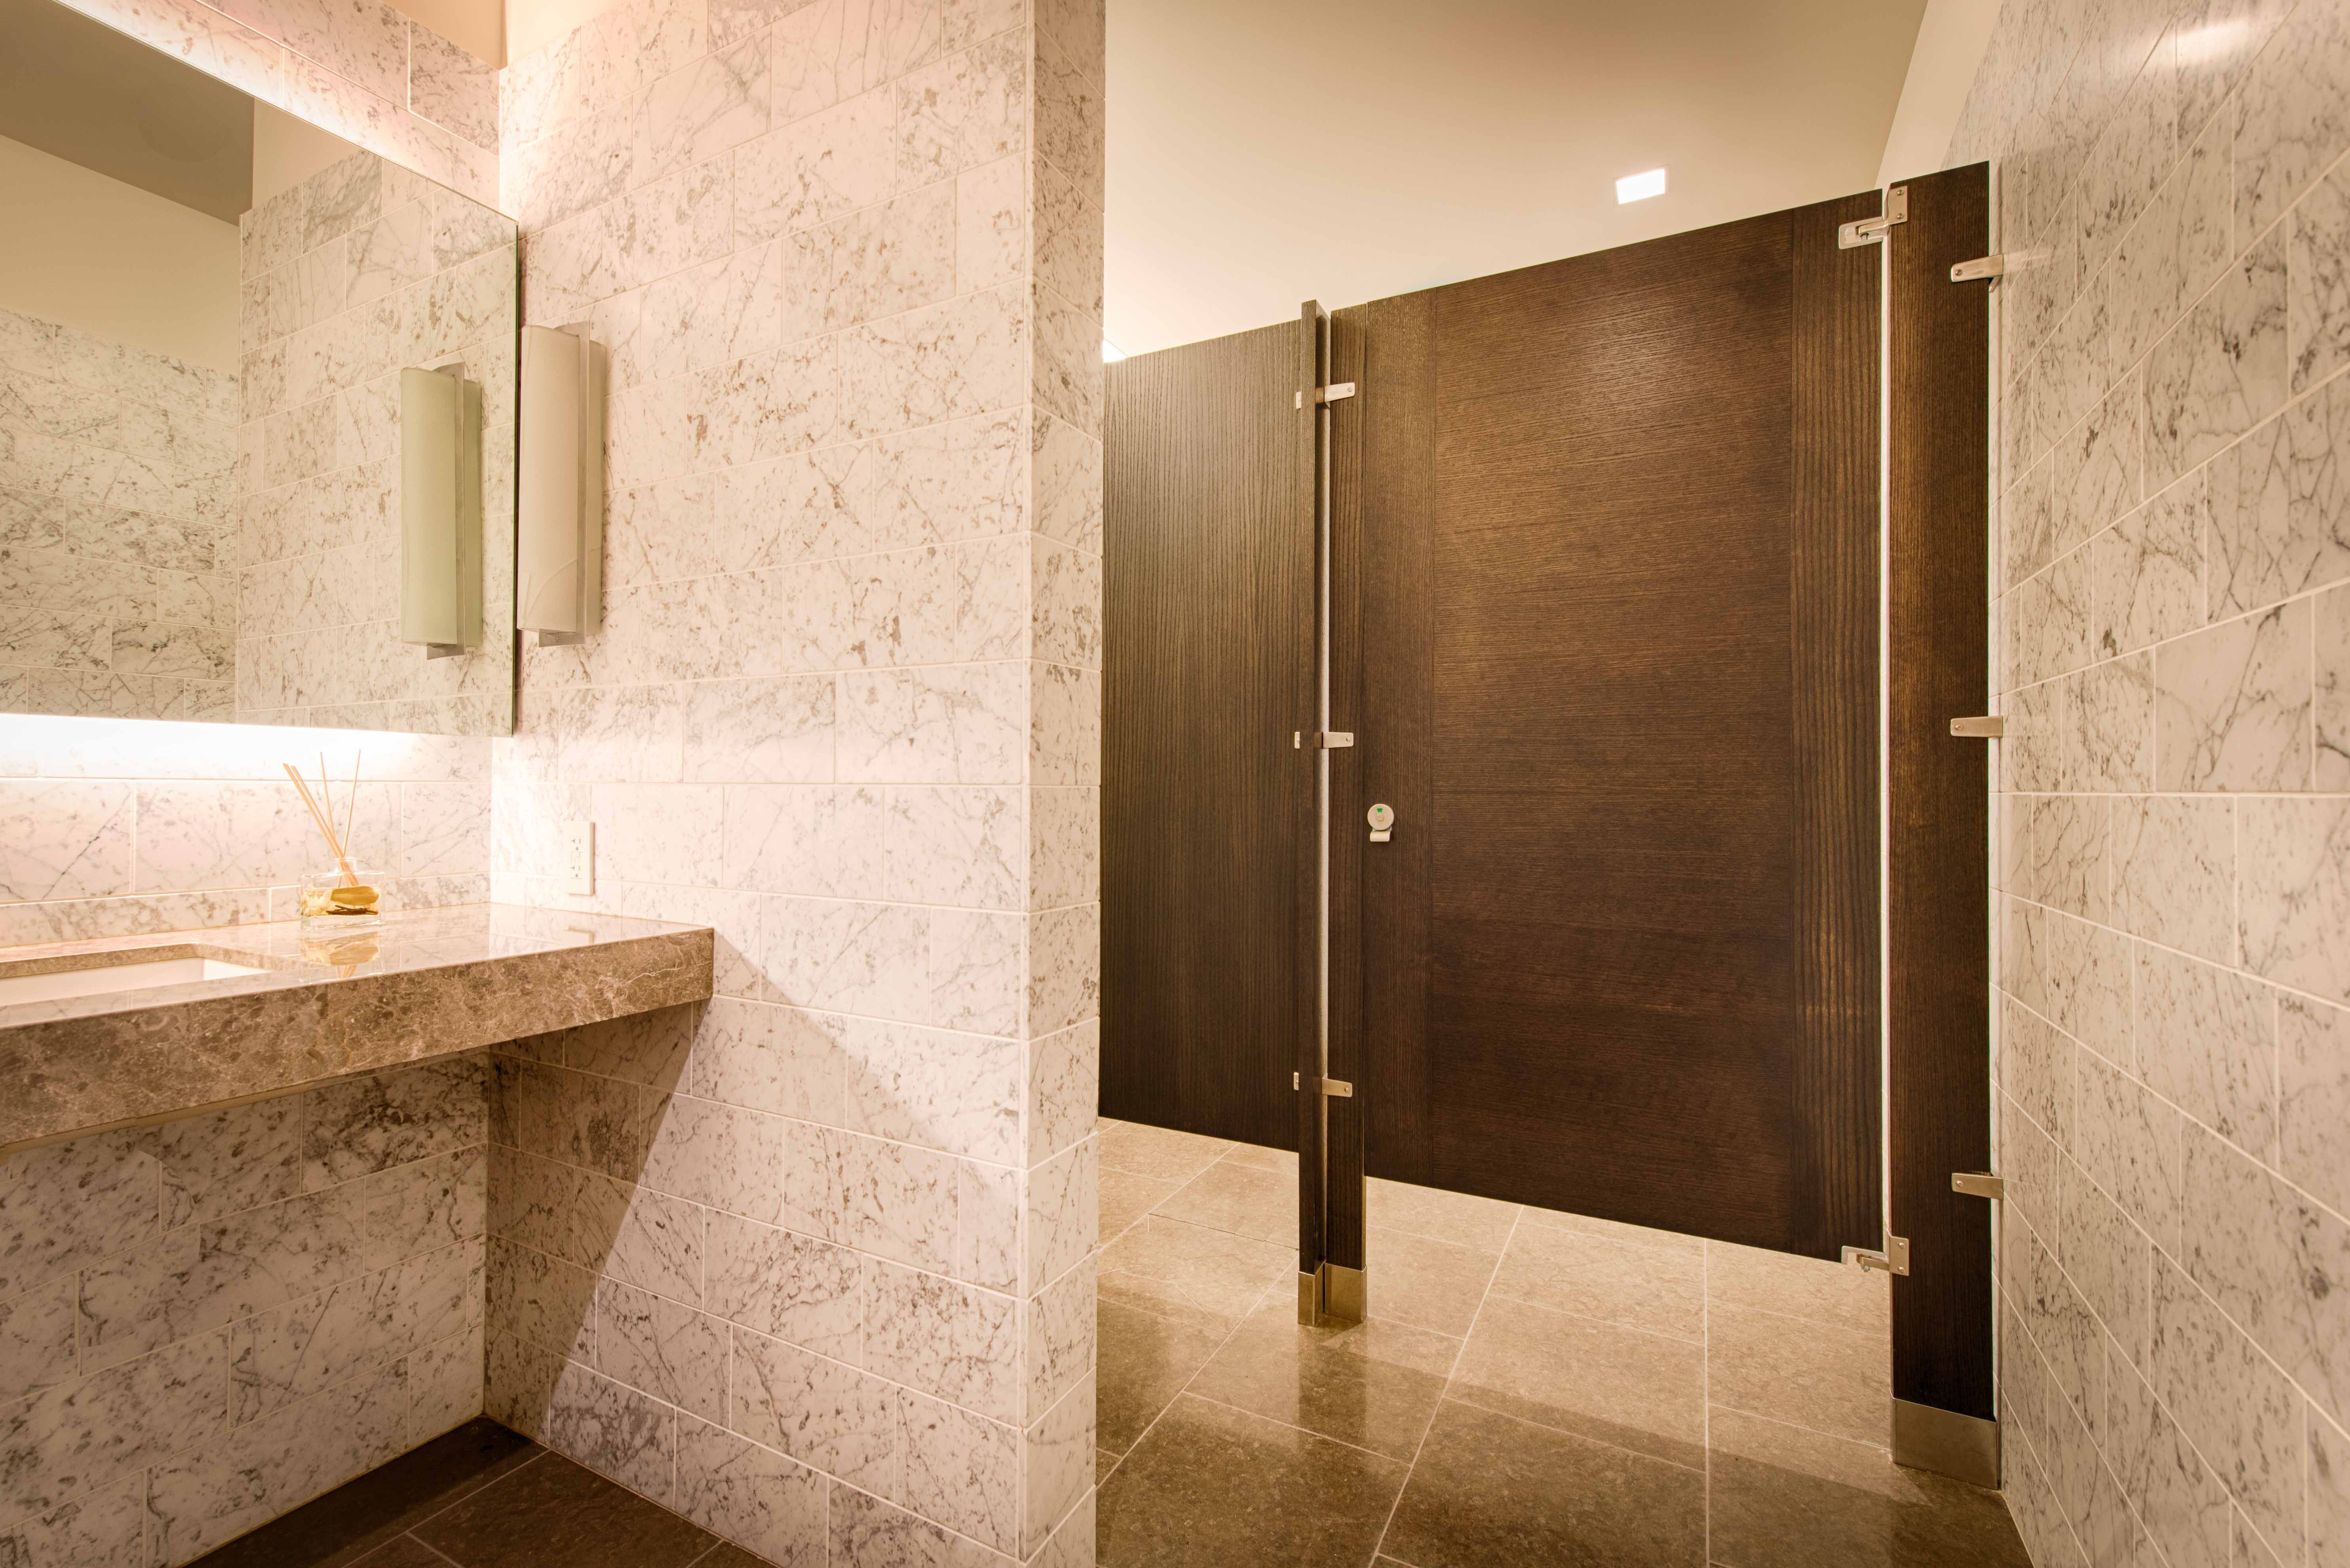 Ironwood Manufacturing Wood Veneer Toilet Partition And Bathroom Door With  Opposing Wood Grain Direction Combination.